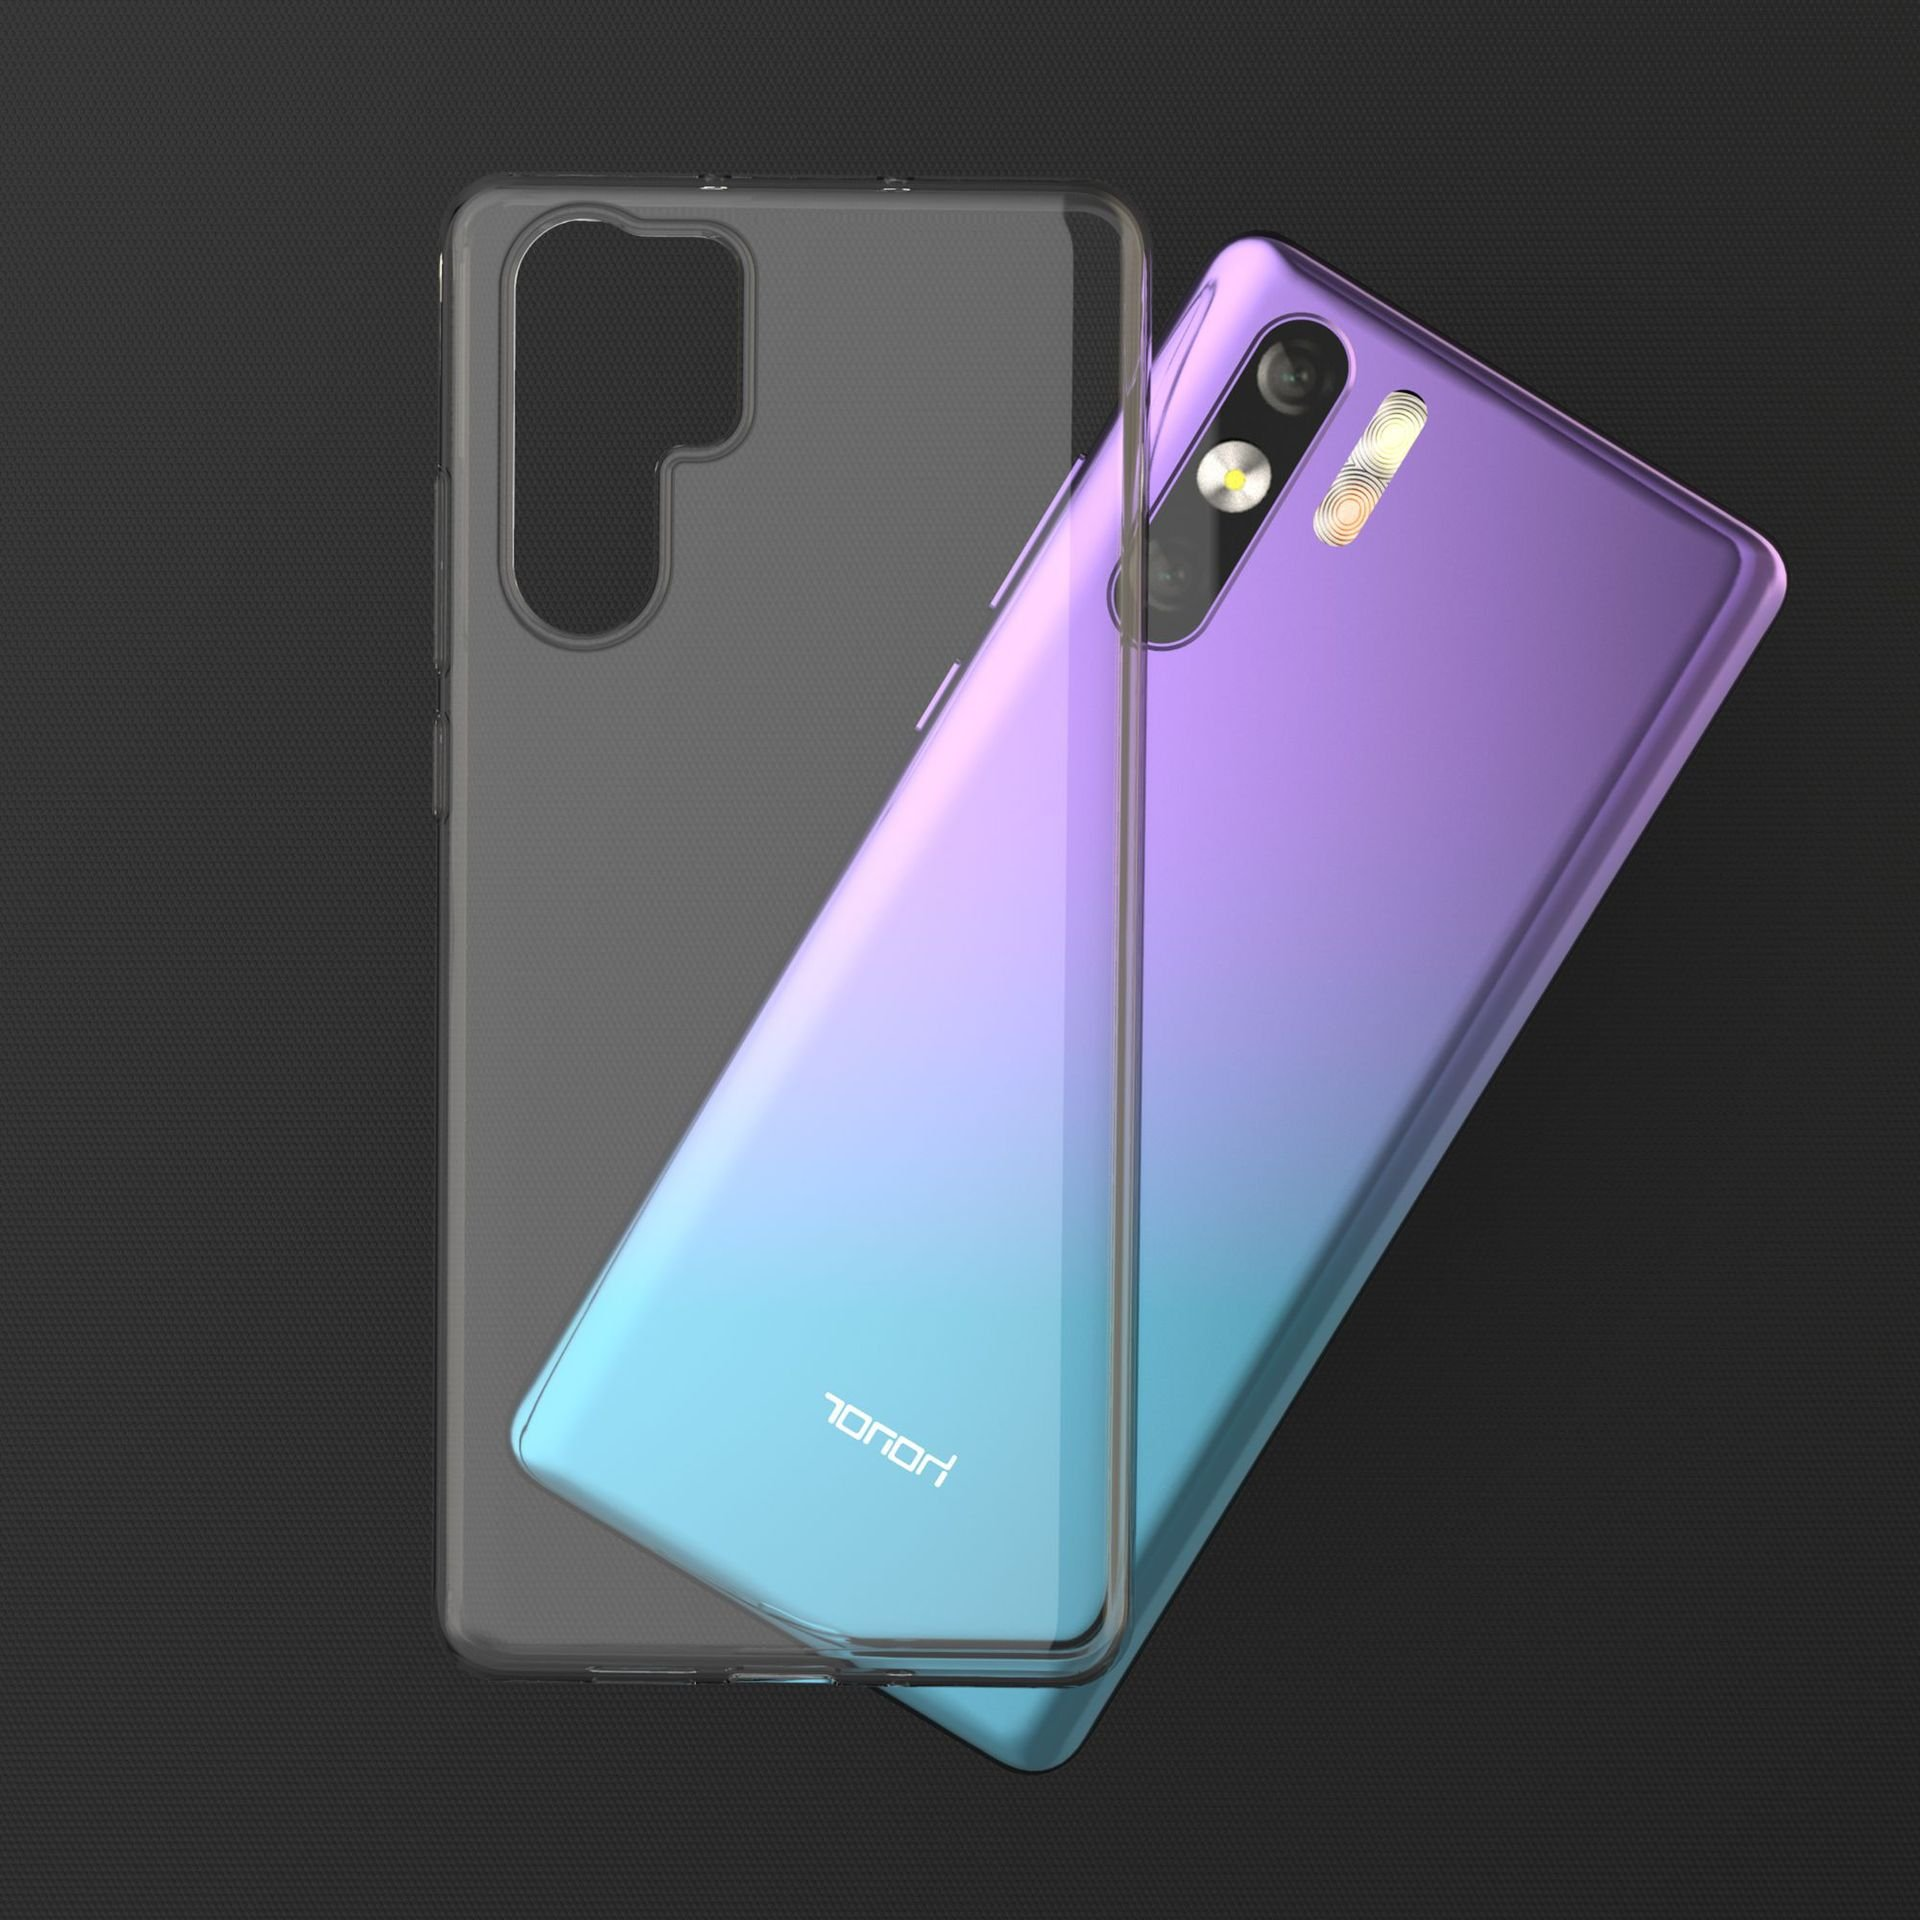 Sony IMX607 Specifications and Huawei P30 Pro Exposure 2